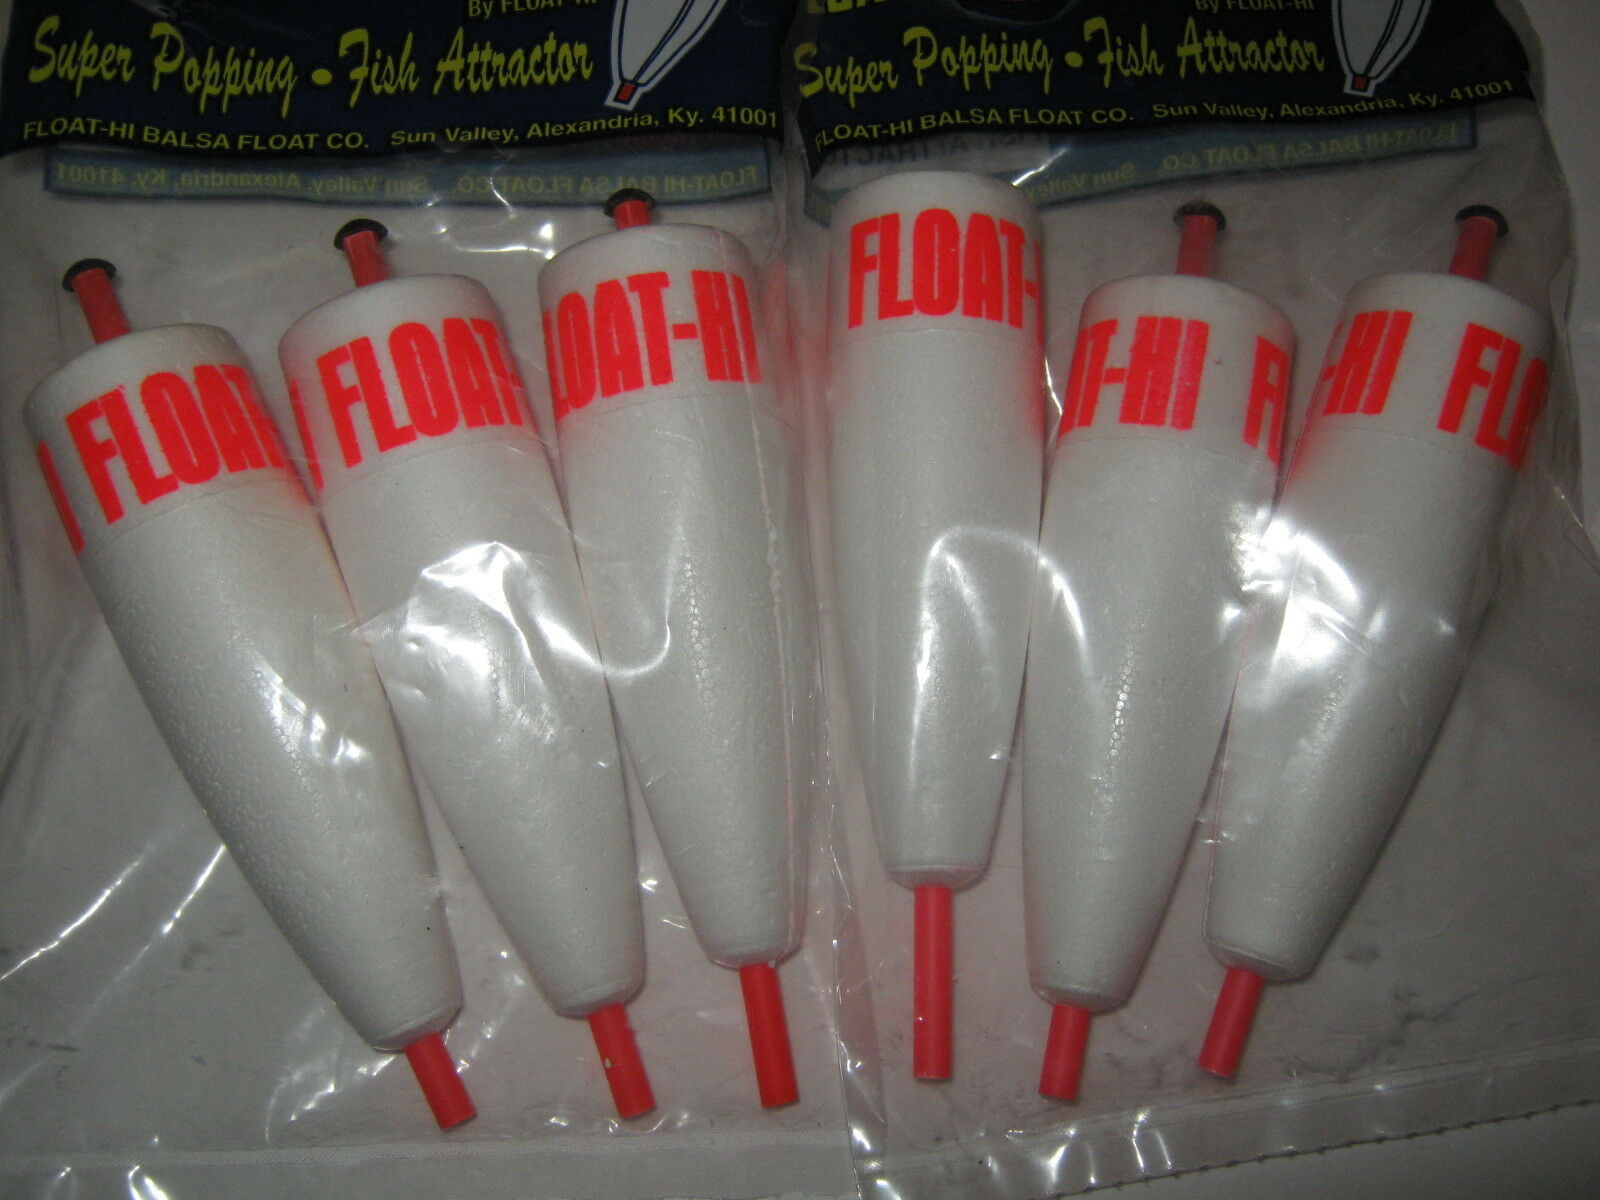 100 Quality 4 in. Foam Popping Corks Adjustable Float Bobber  Fishing Redfish Rig  fast delivery